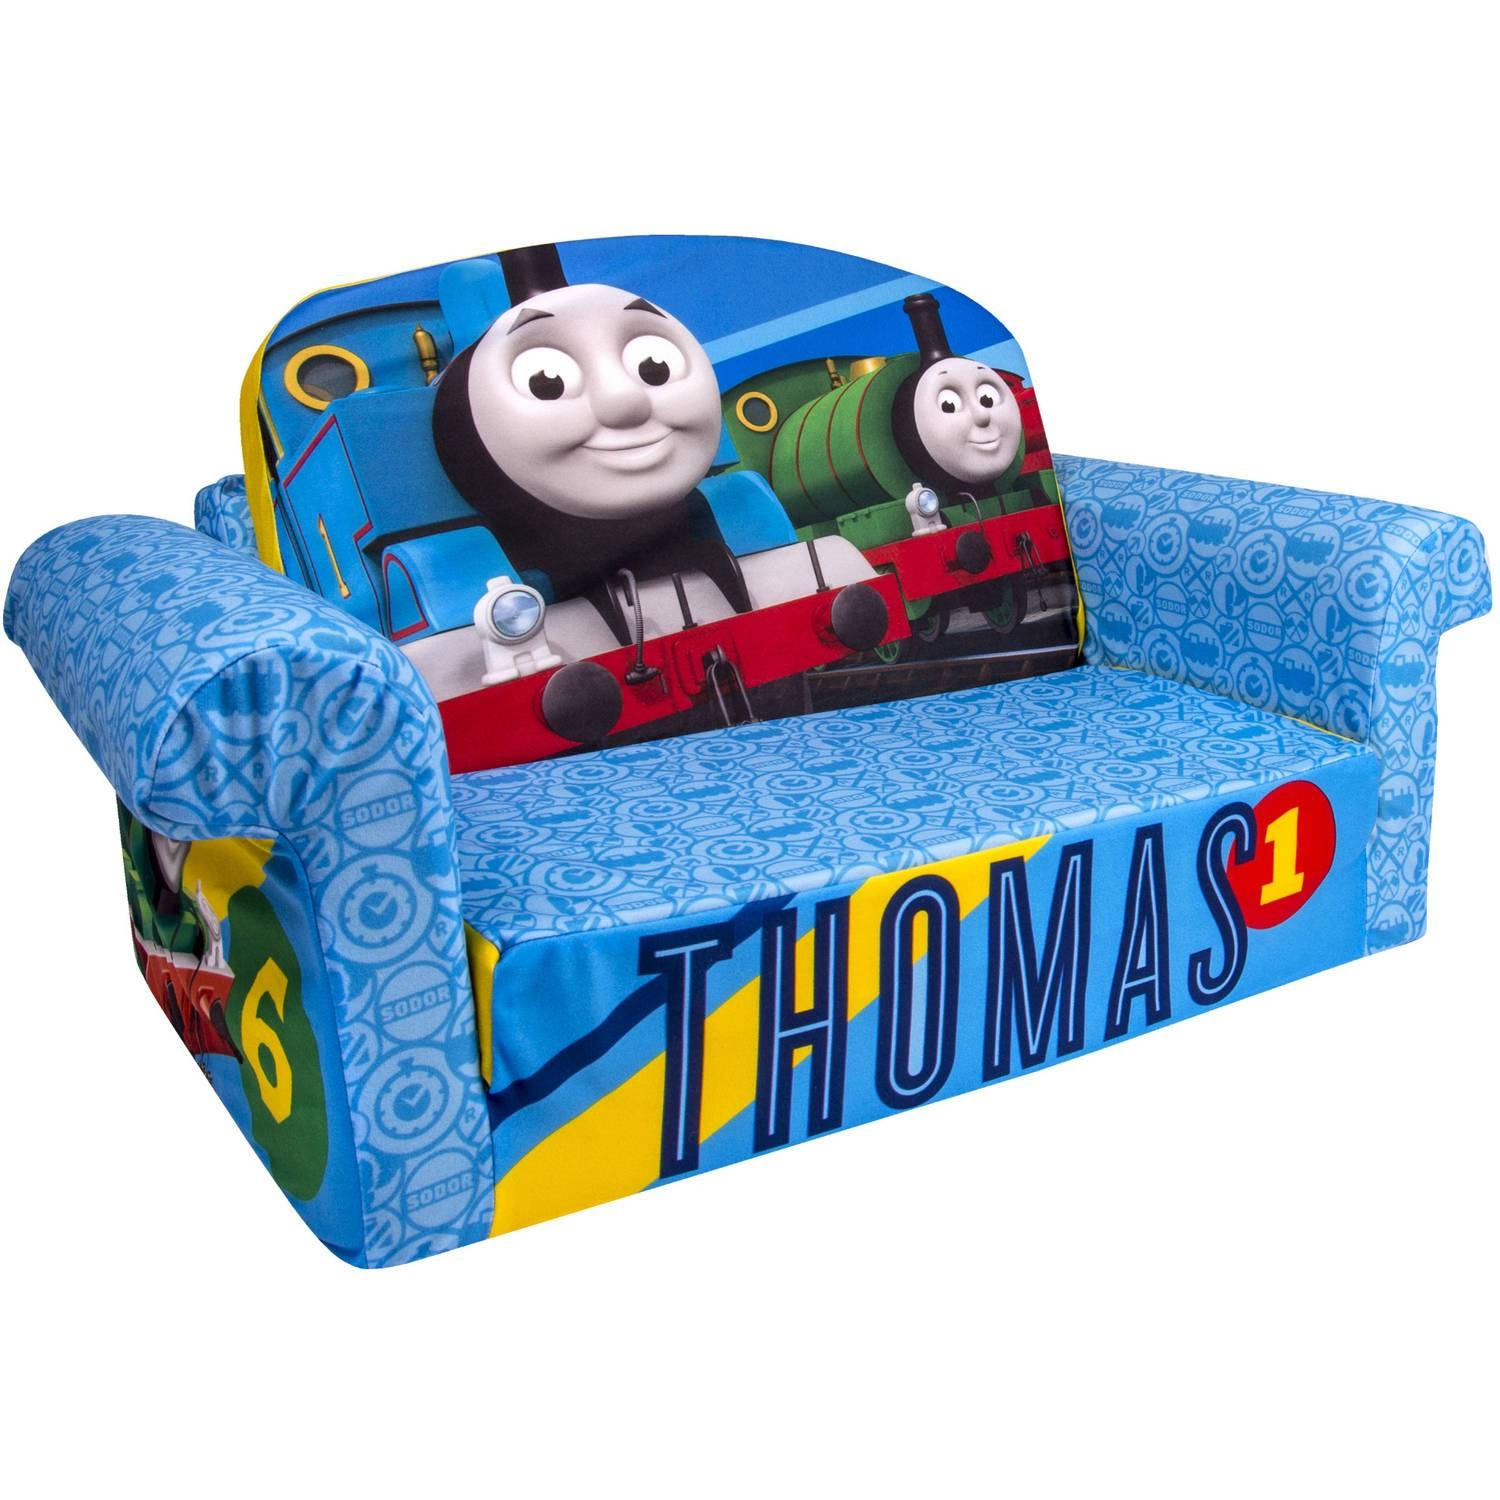 Marshmallow 2-In-1 Flip-Open Sofa, Thomas & Friends - Walmart intended for Flip Open Couches (Image 7 of 15)